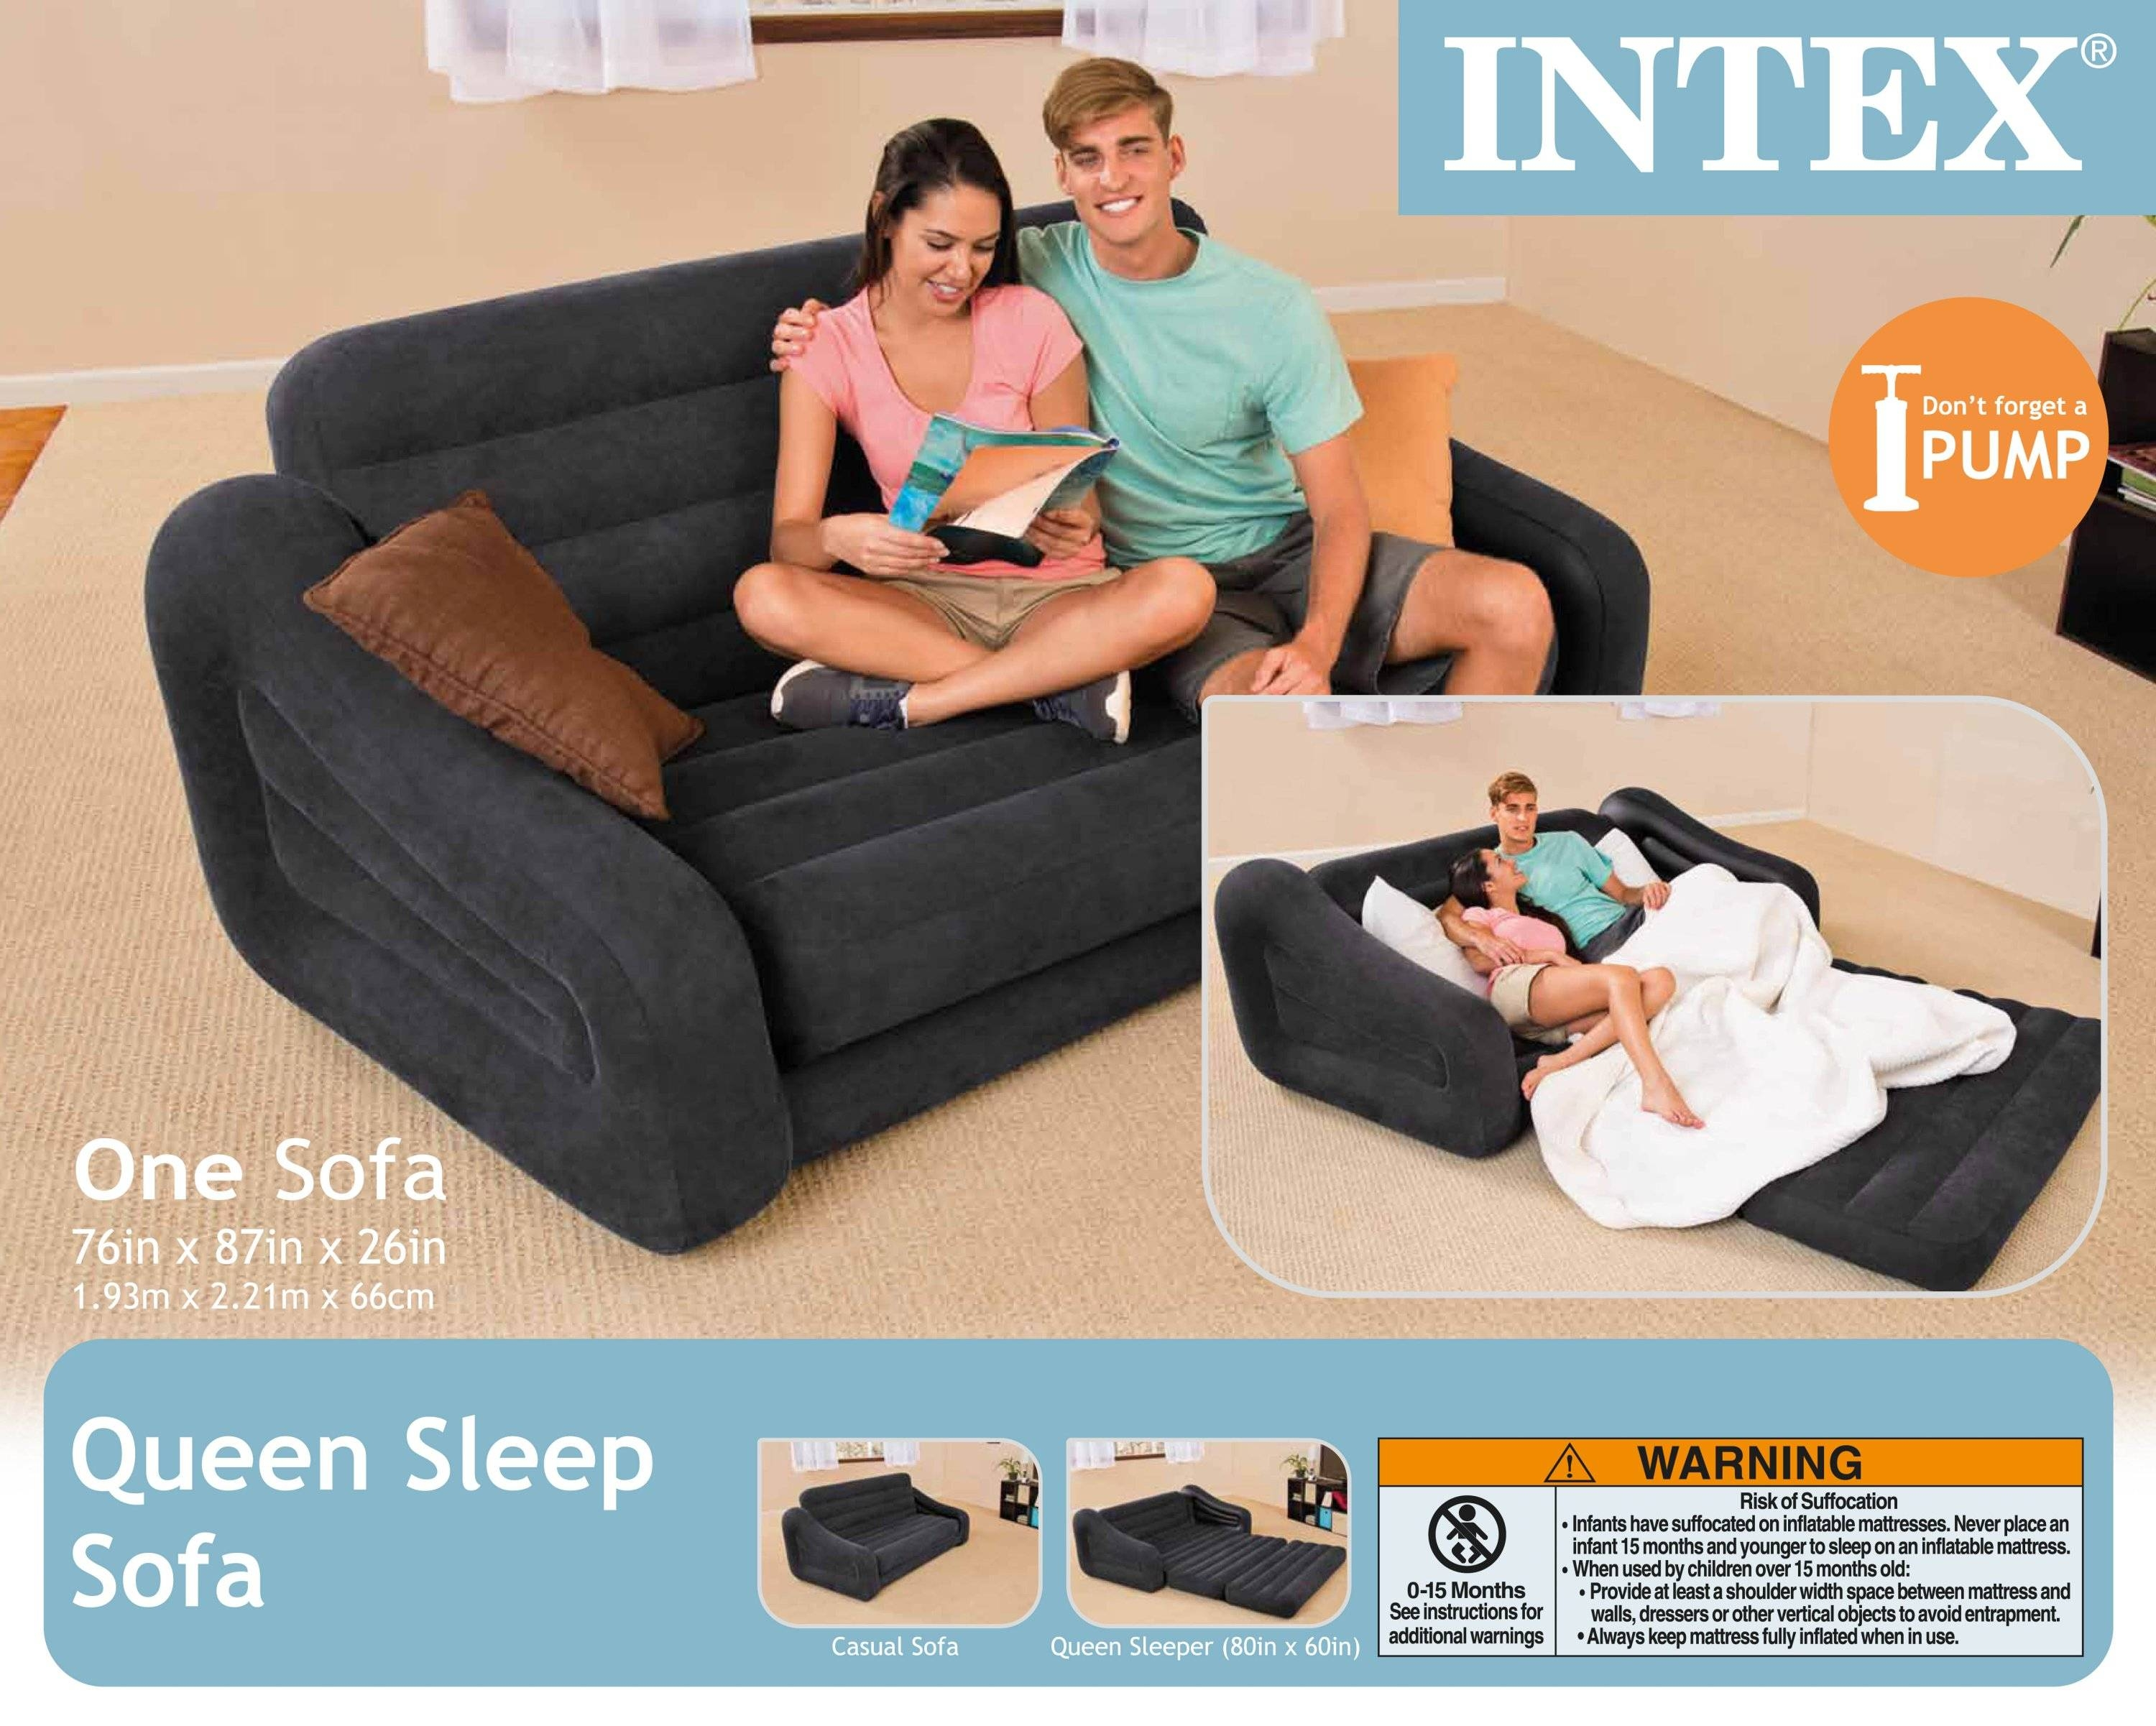 Intex Inflatable Pull-Out Sofa & Queen Bed Mattress Sleeper W/ Ac within Intex Inflatable Pull Out Sofas (Image 10 of 15)